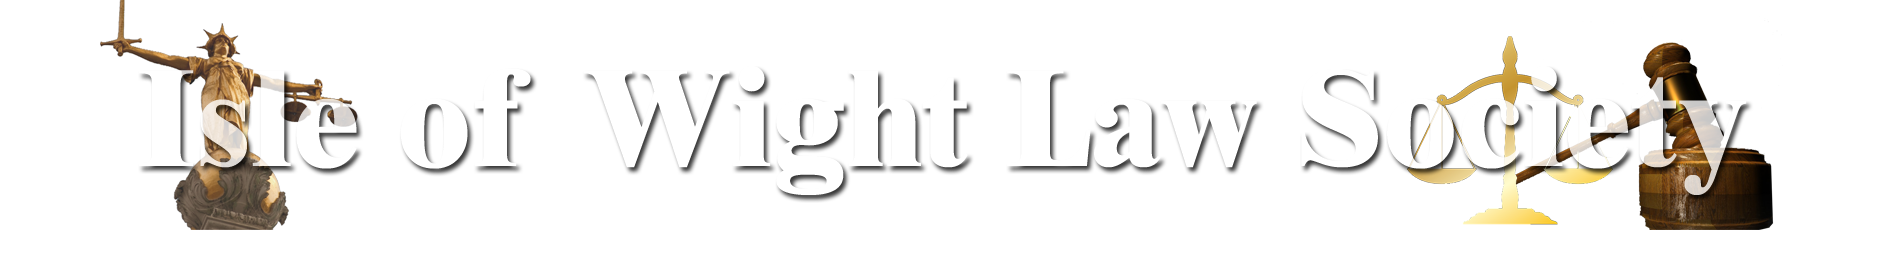 Isle of wight law society Logo